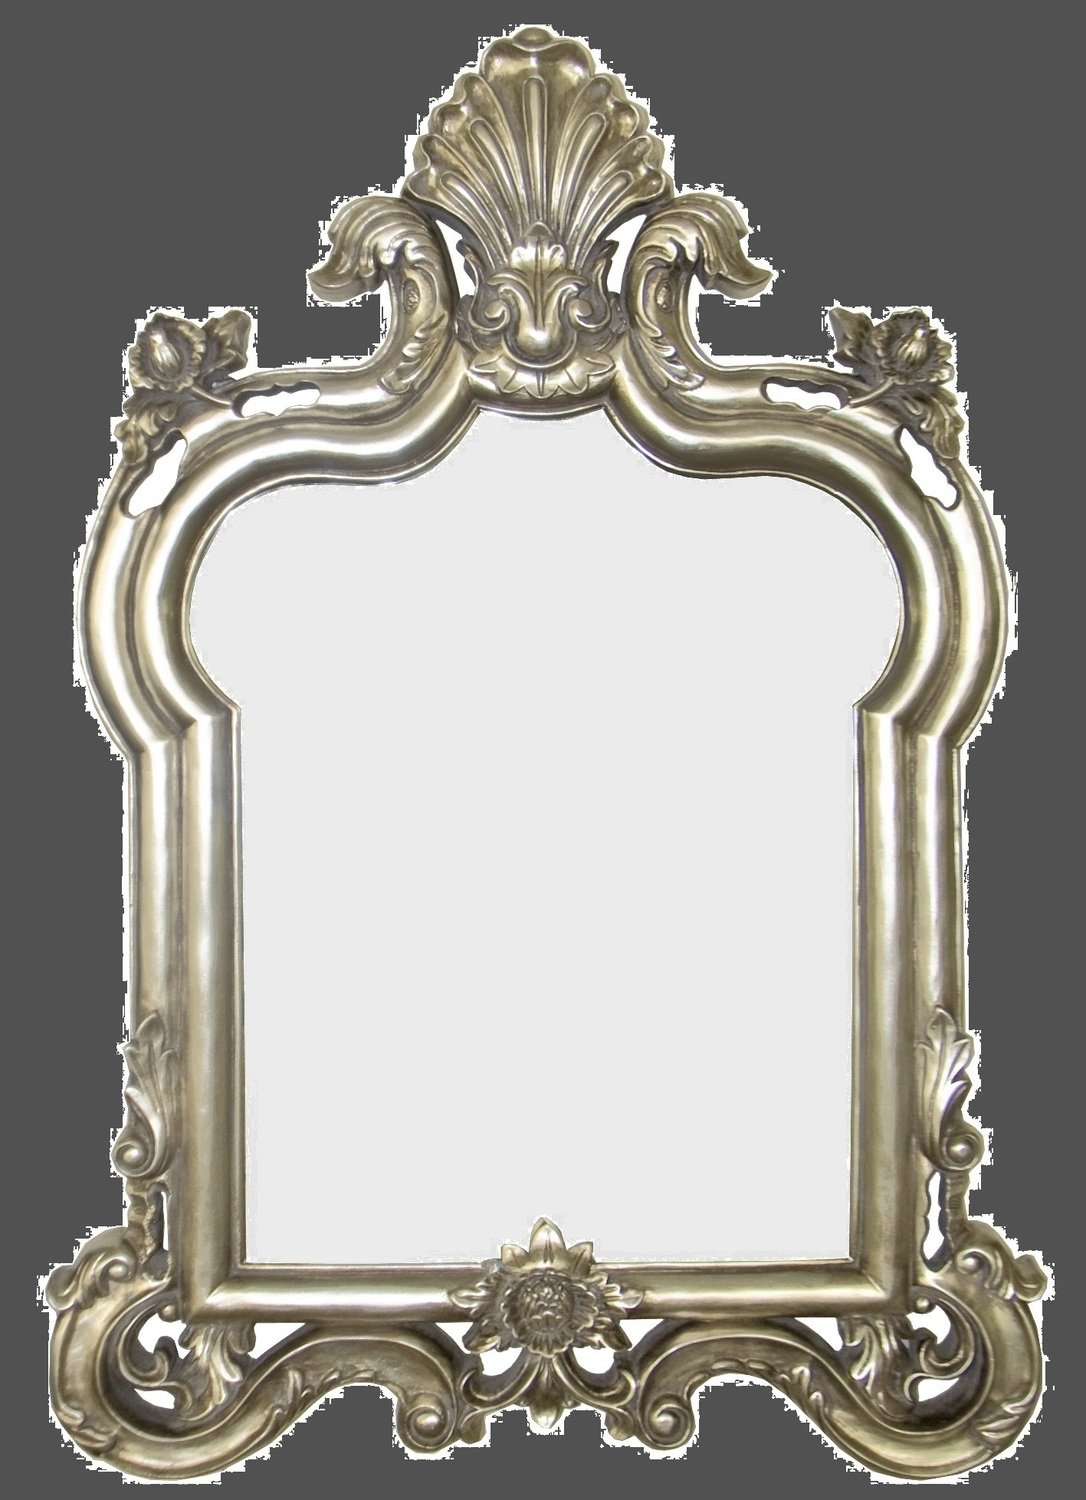 AF023 ornate overmantle silver/gold/white mirror